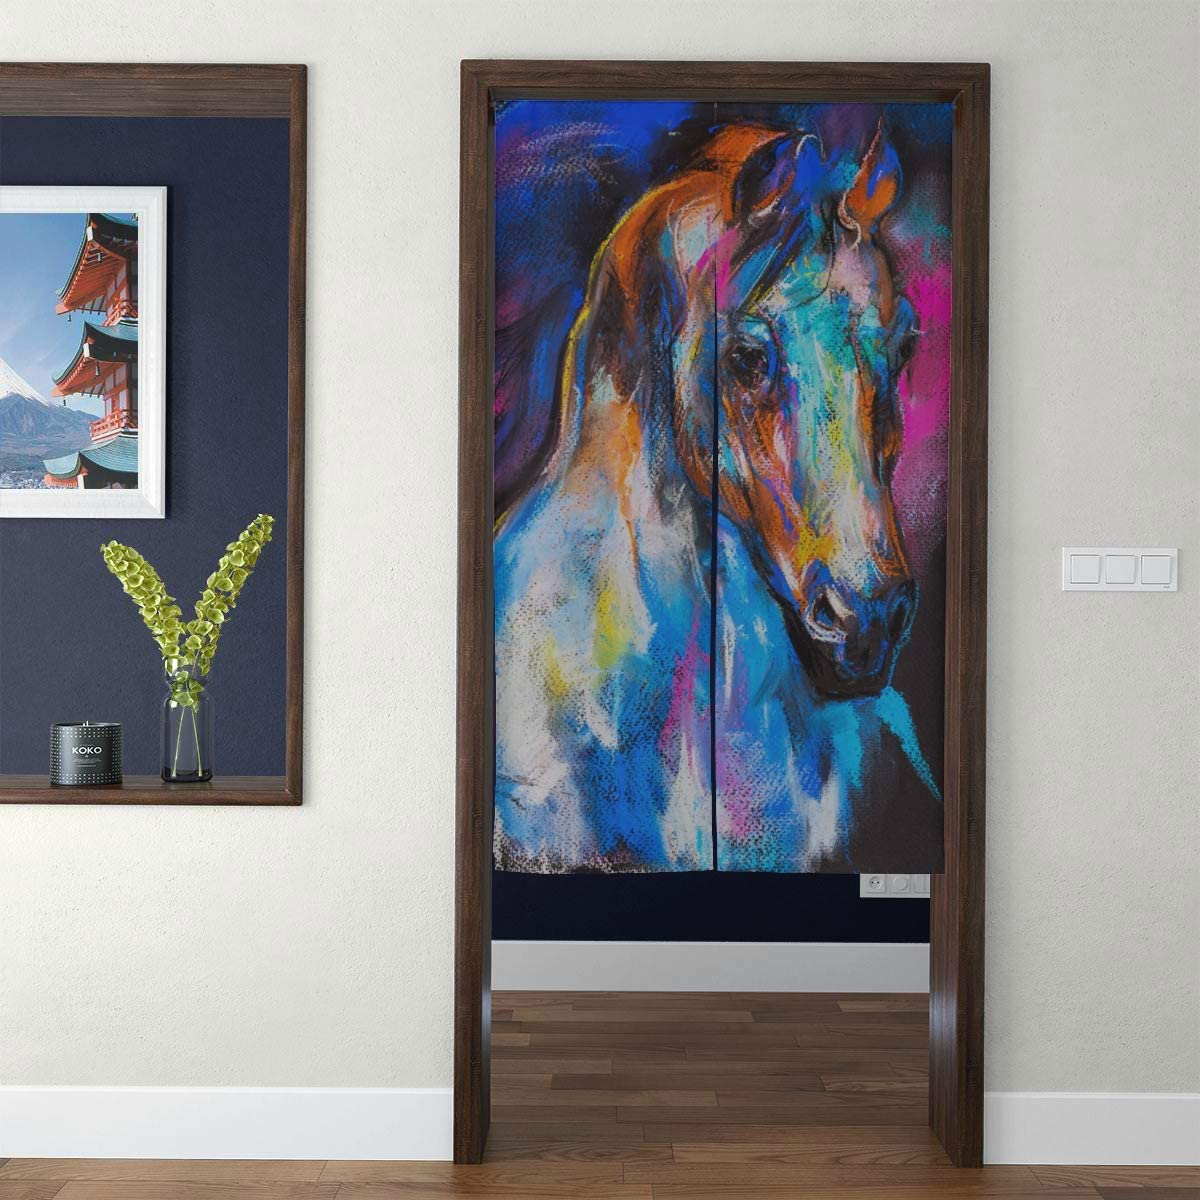 Door Curtain Japanese Noren Curtain Original Pastel Painting Horse On Cardboard 3D Print Doorway Curtain Hallway Bedroom Partition Curtain Door Tapestry with Telescopic Rod for Home Decor Long Style